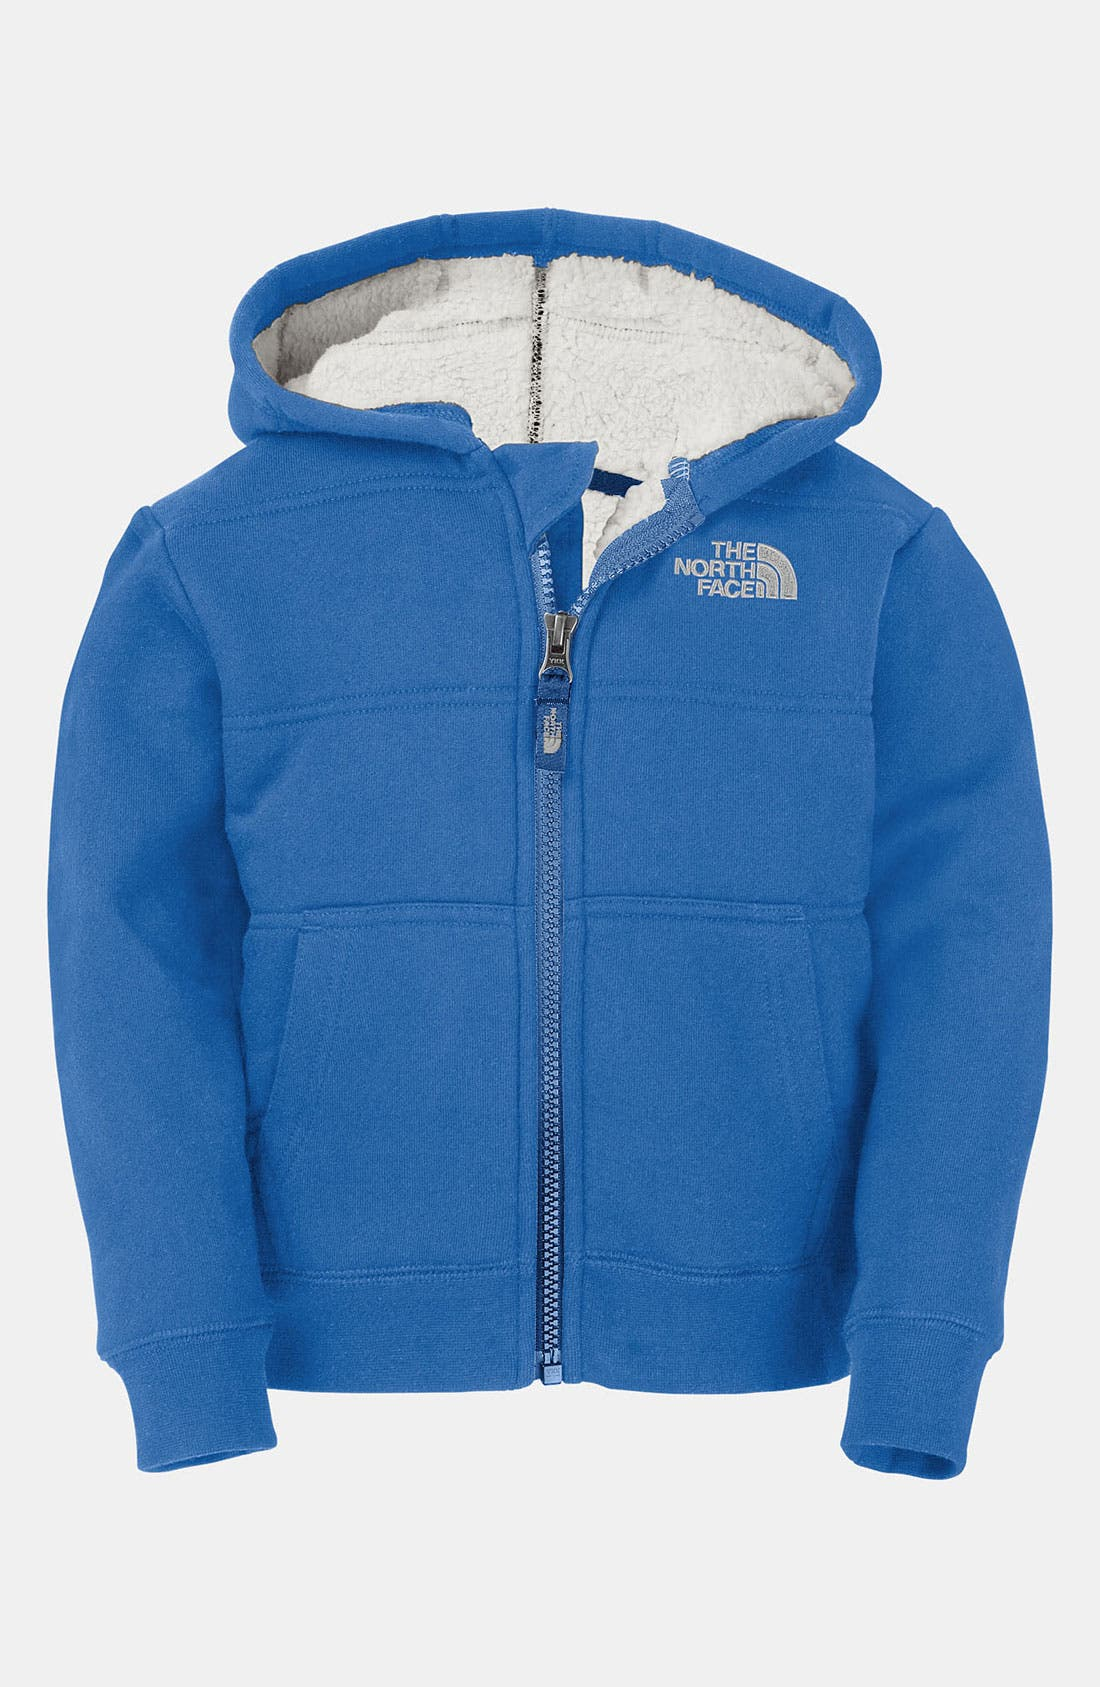 Alternate Image 1 Selected - The North Face 'Foreverlong' Hoodie (Toddler)